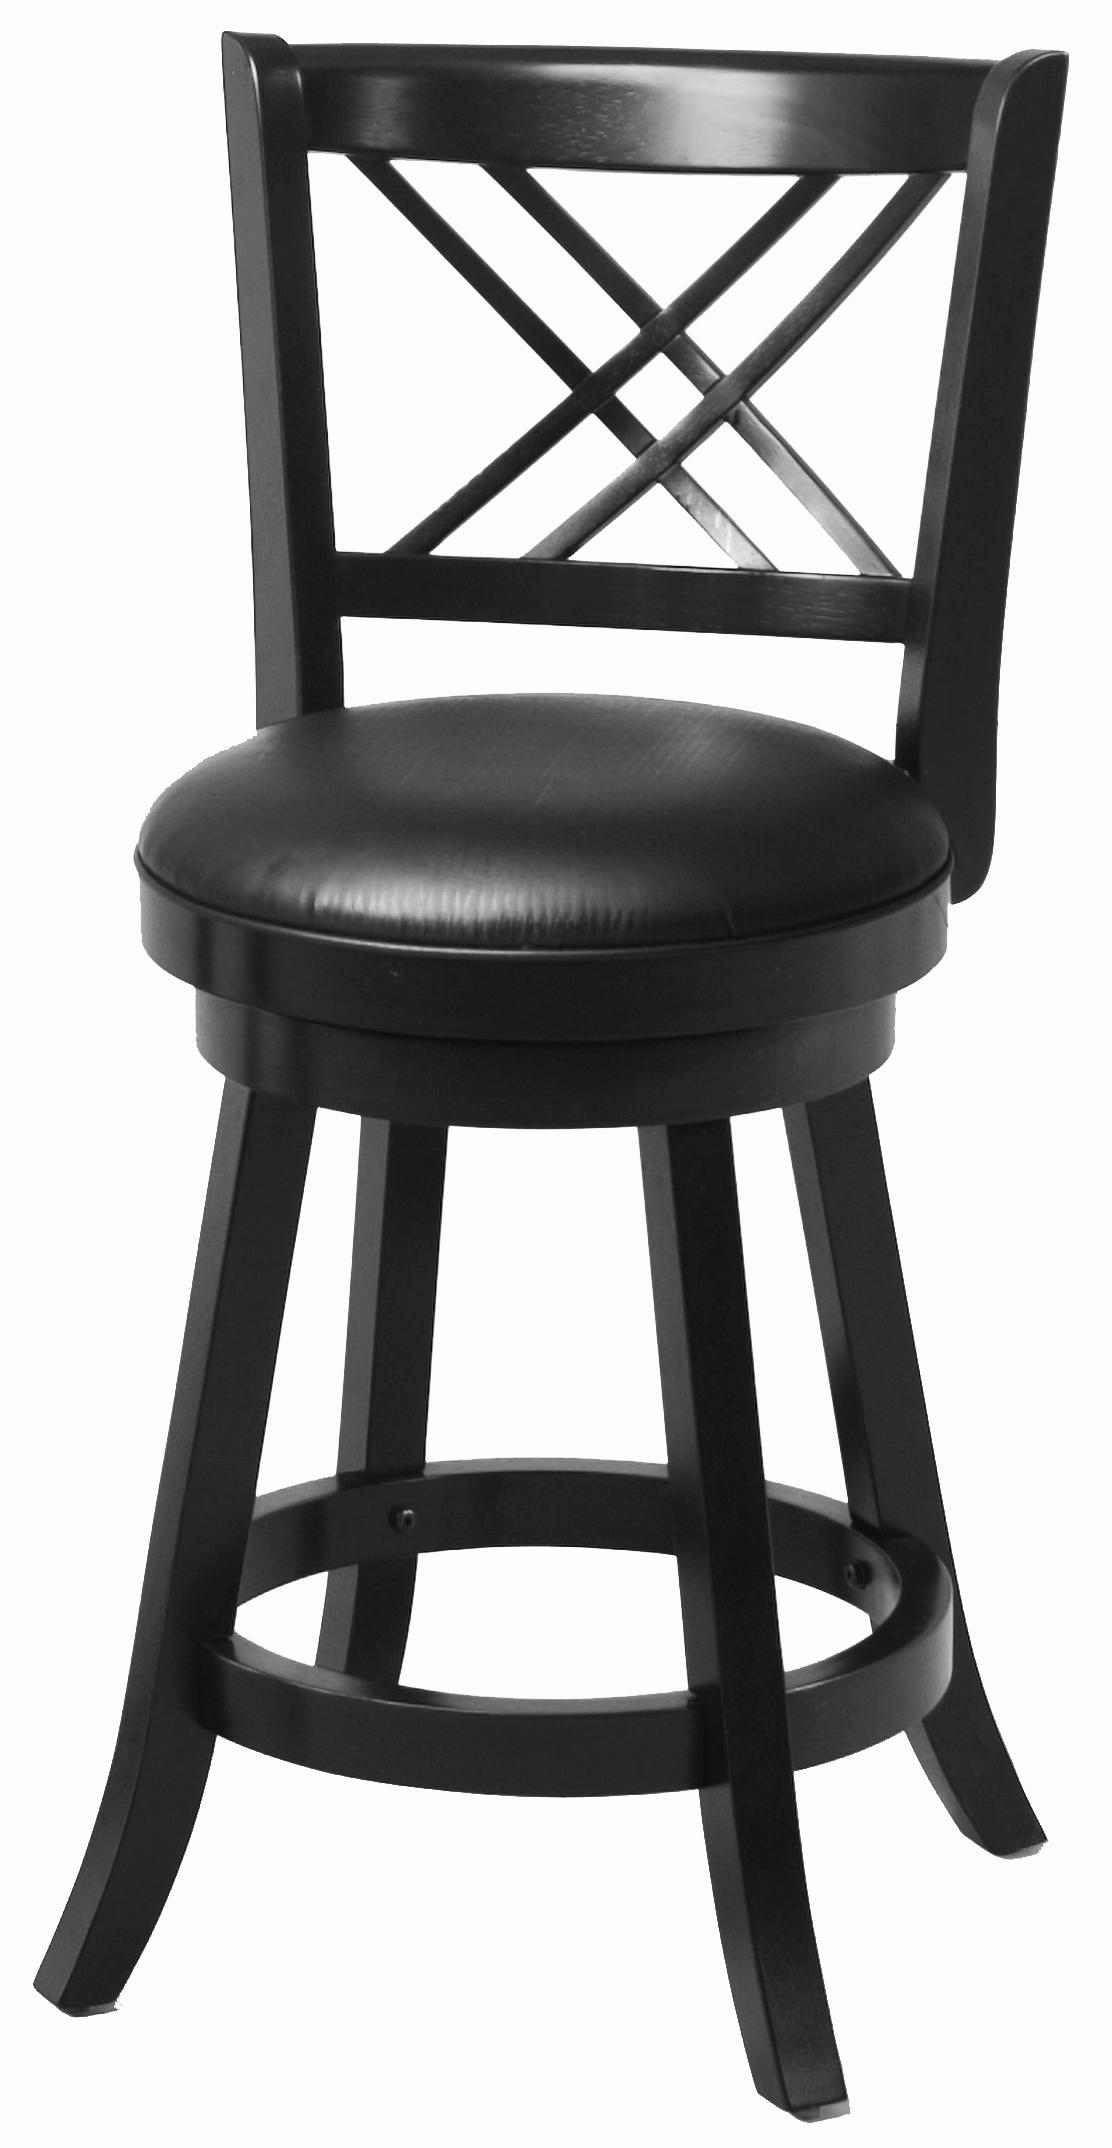 "Coaster Dining Chairs and Bar Stools 24"" Swivel Bar Stool with Upholstered Seat - Item Number: 101959"